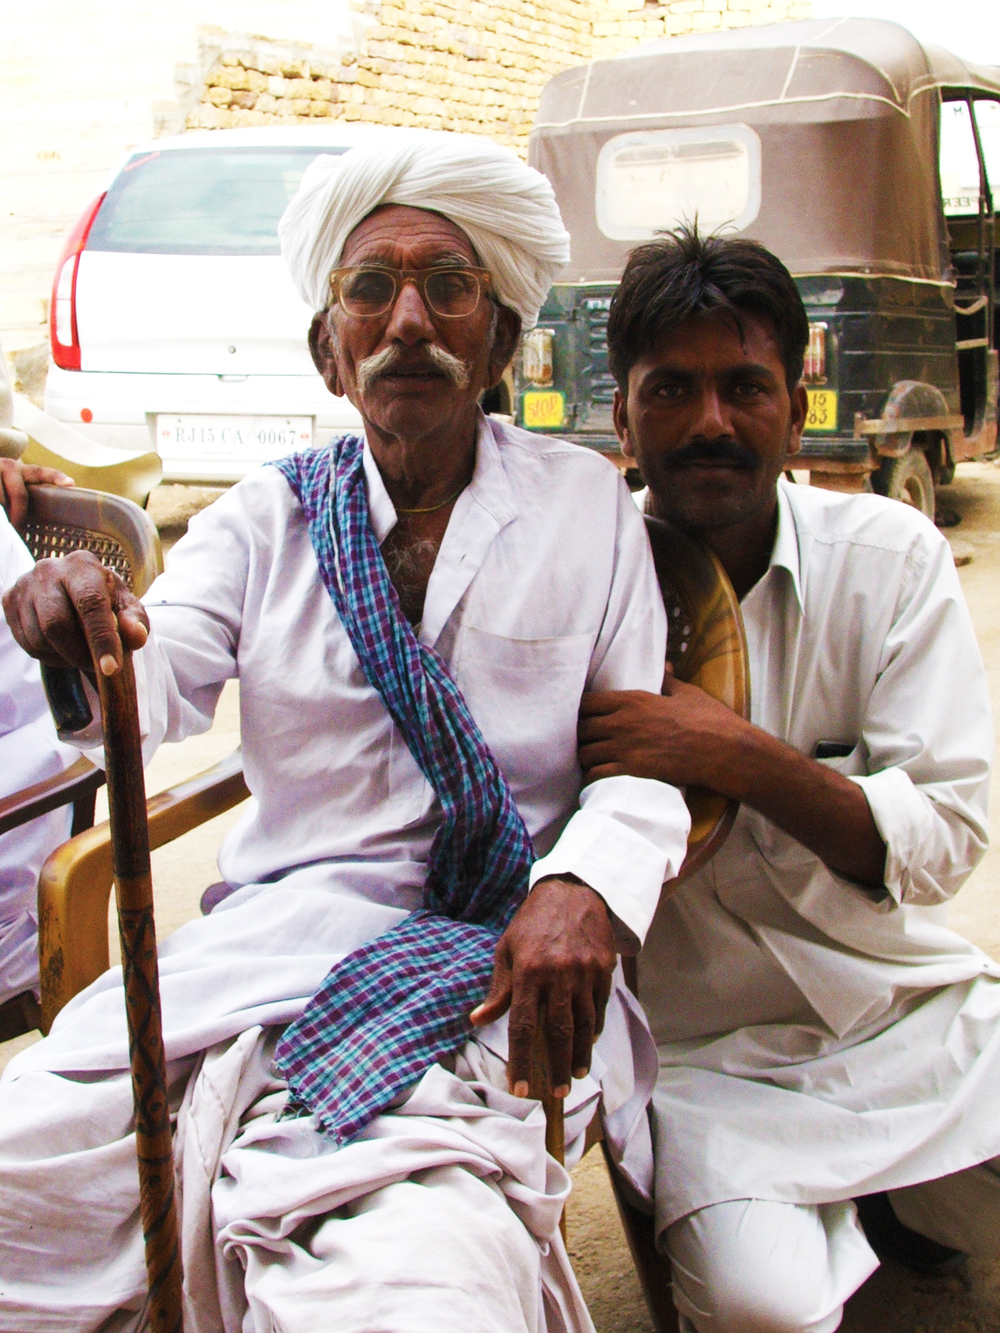 Sakar Khan Manghaniyar, kamancha  The greatest maestro before the Eternal past away in August 2013. [ + ]  Here in Jaisalmer (2009), with the gentle driver. Usually drinking  dutt  (milk) in Hamira. Father of Ghewar (kamancha), Firoze (dholak) and Darra (kamancha). The two first are part of Divana ensemble.